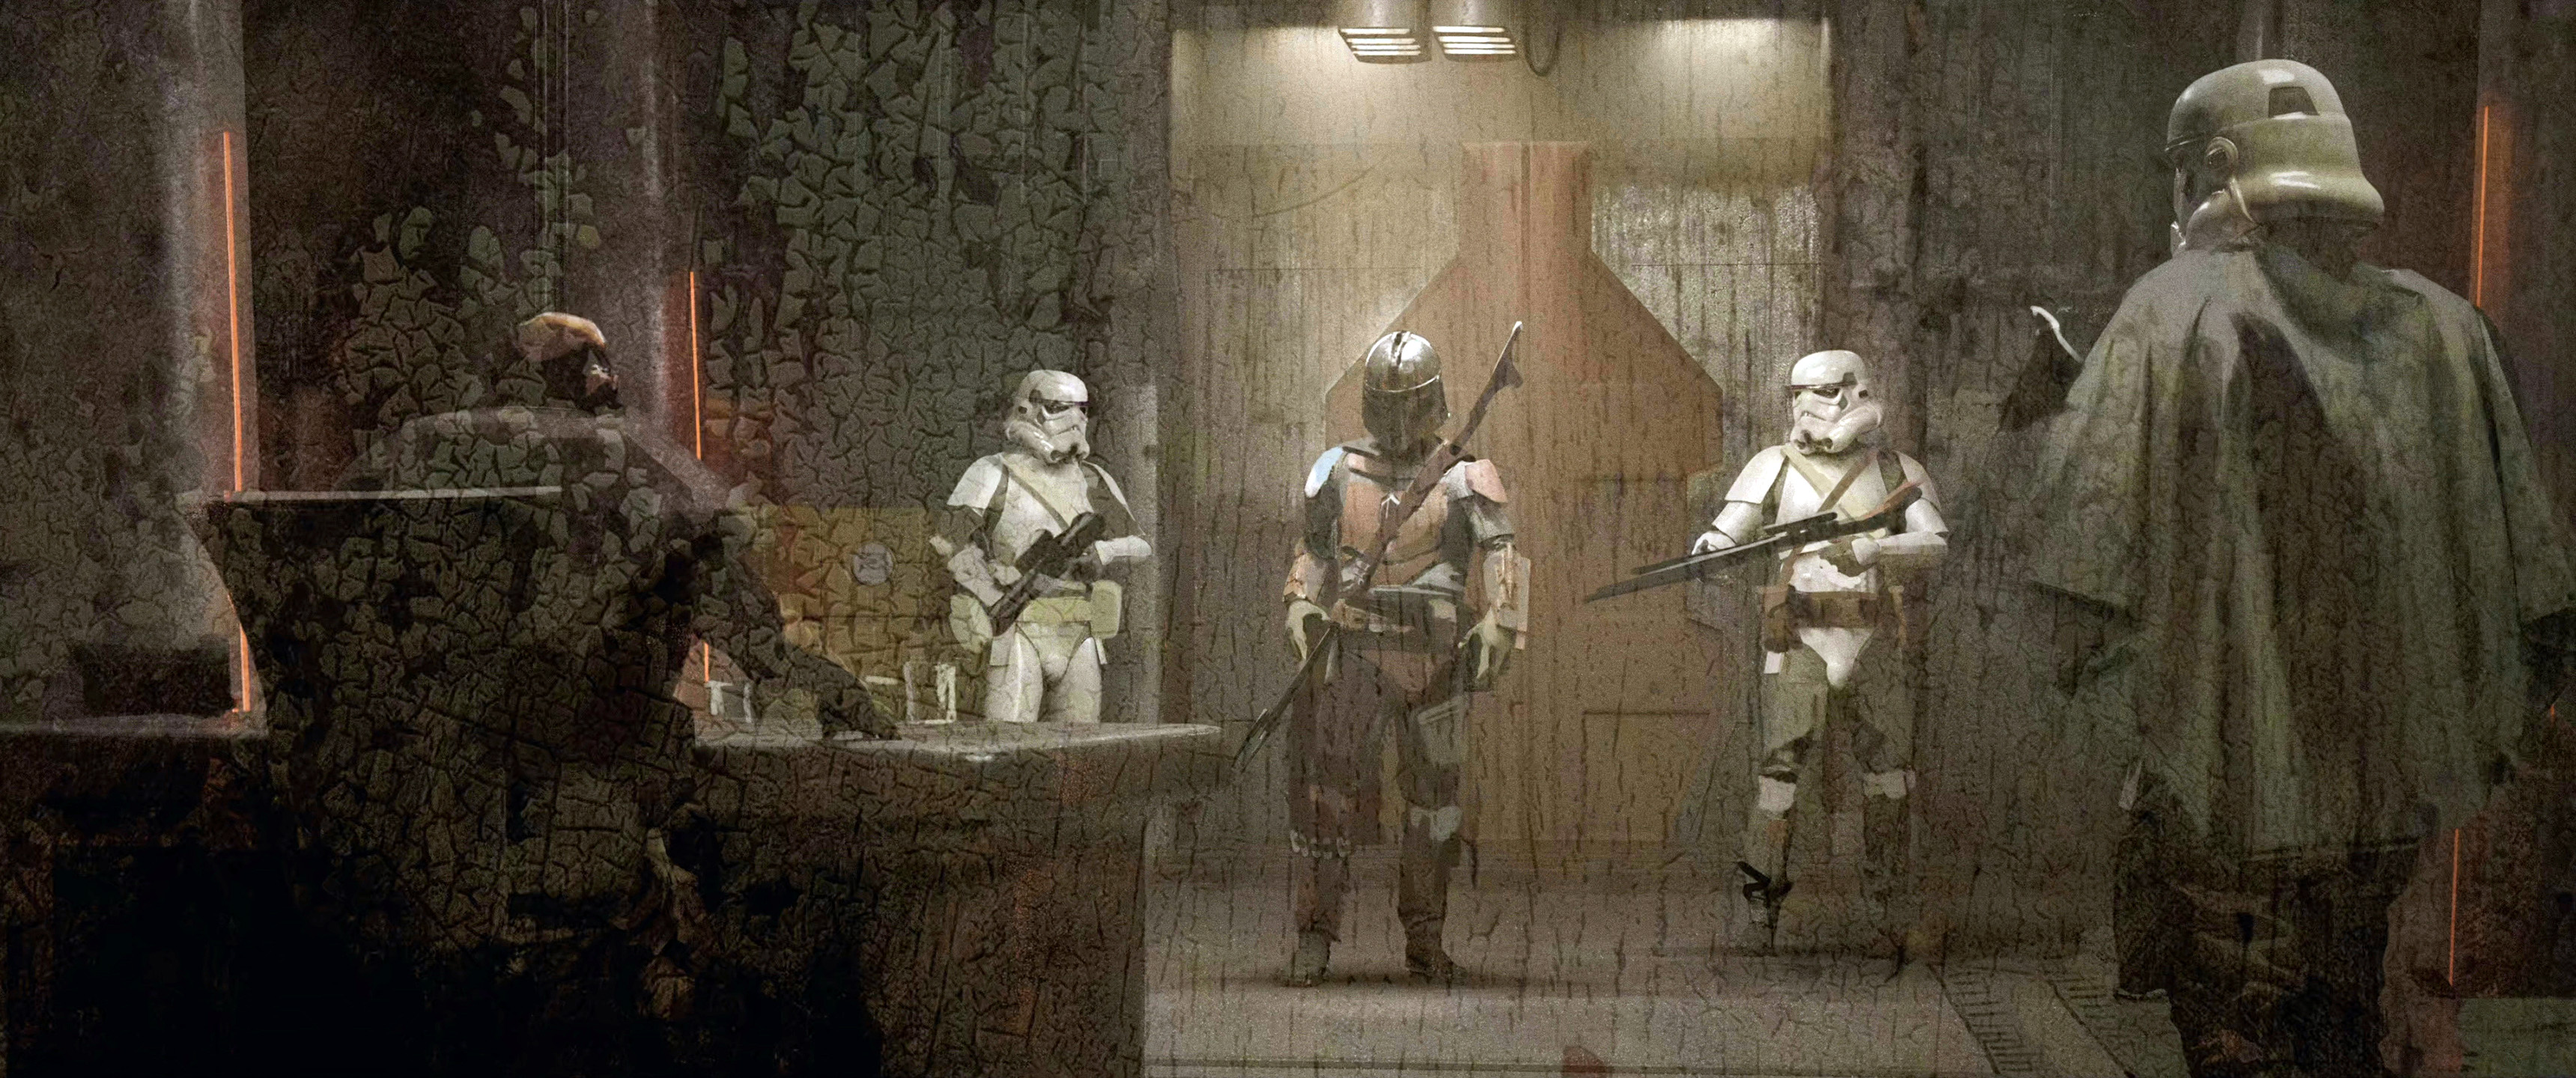 The Mandalorian Hd Wallpaper Background Image 3440x1440 Id